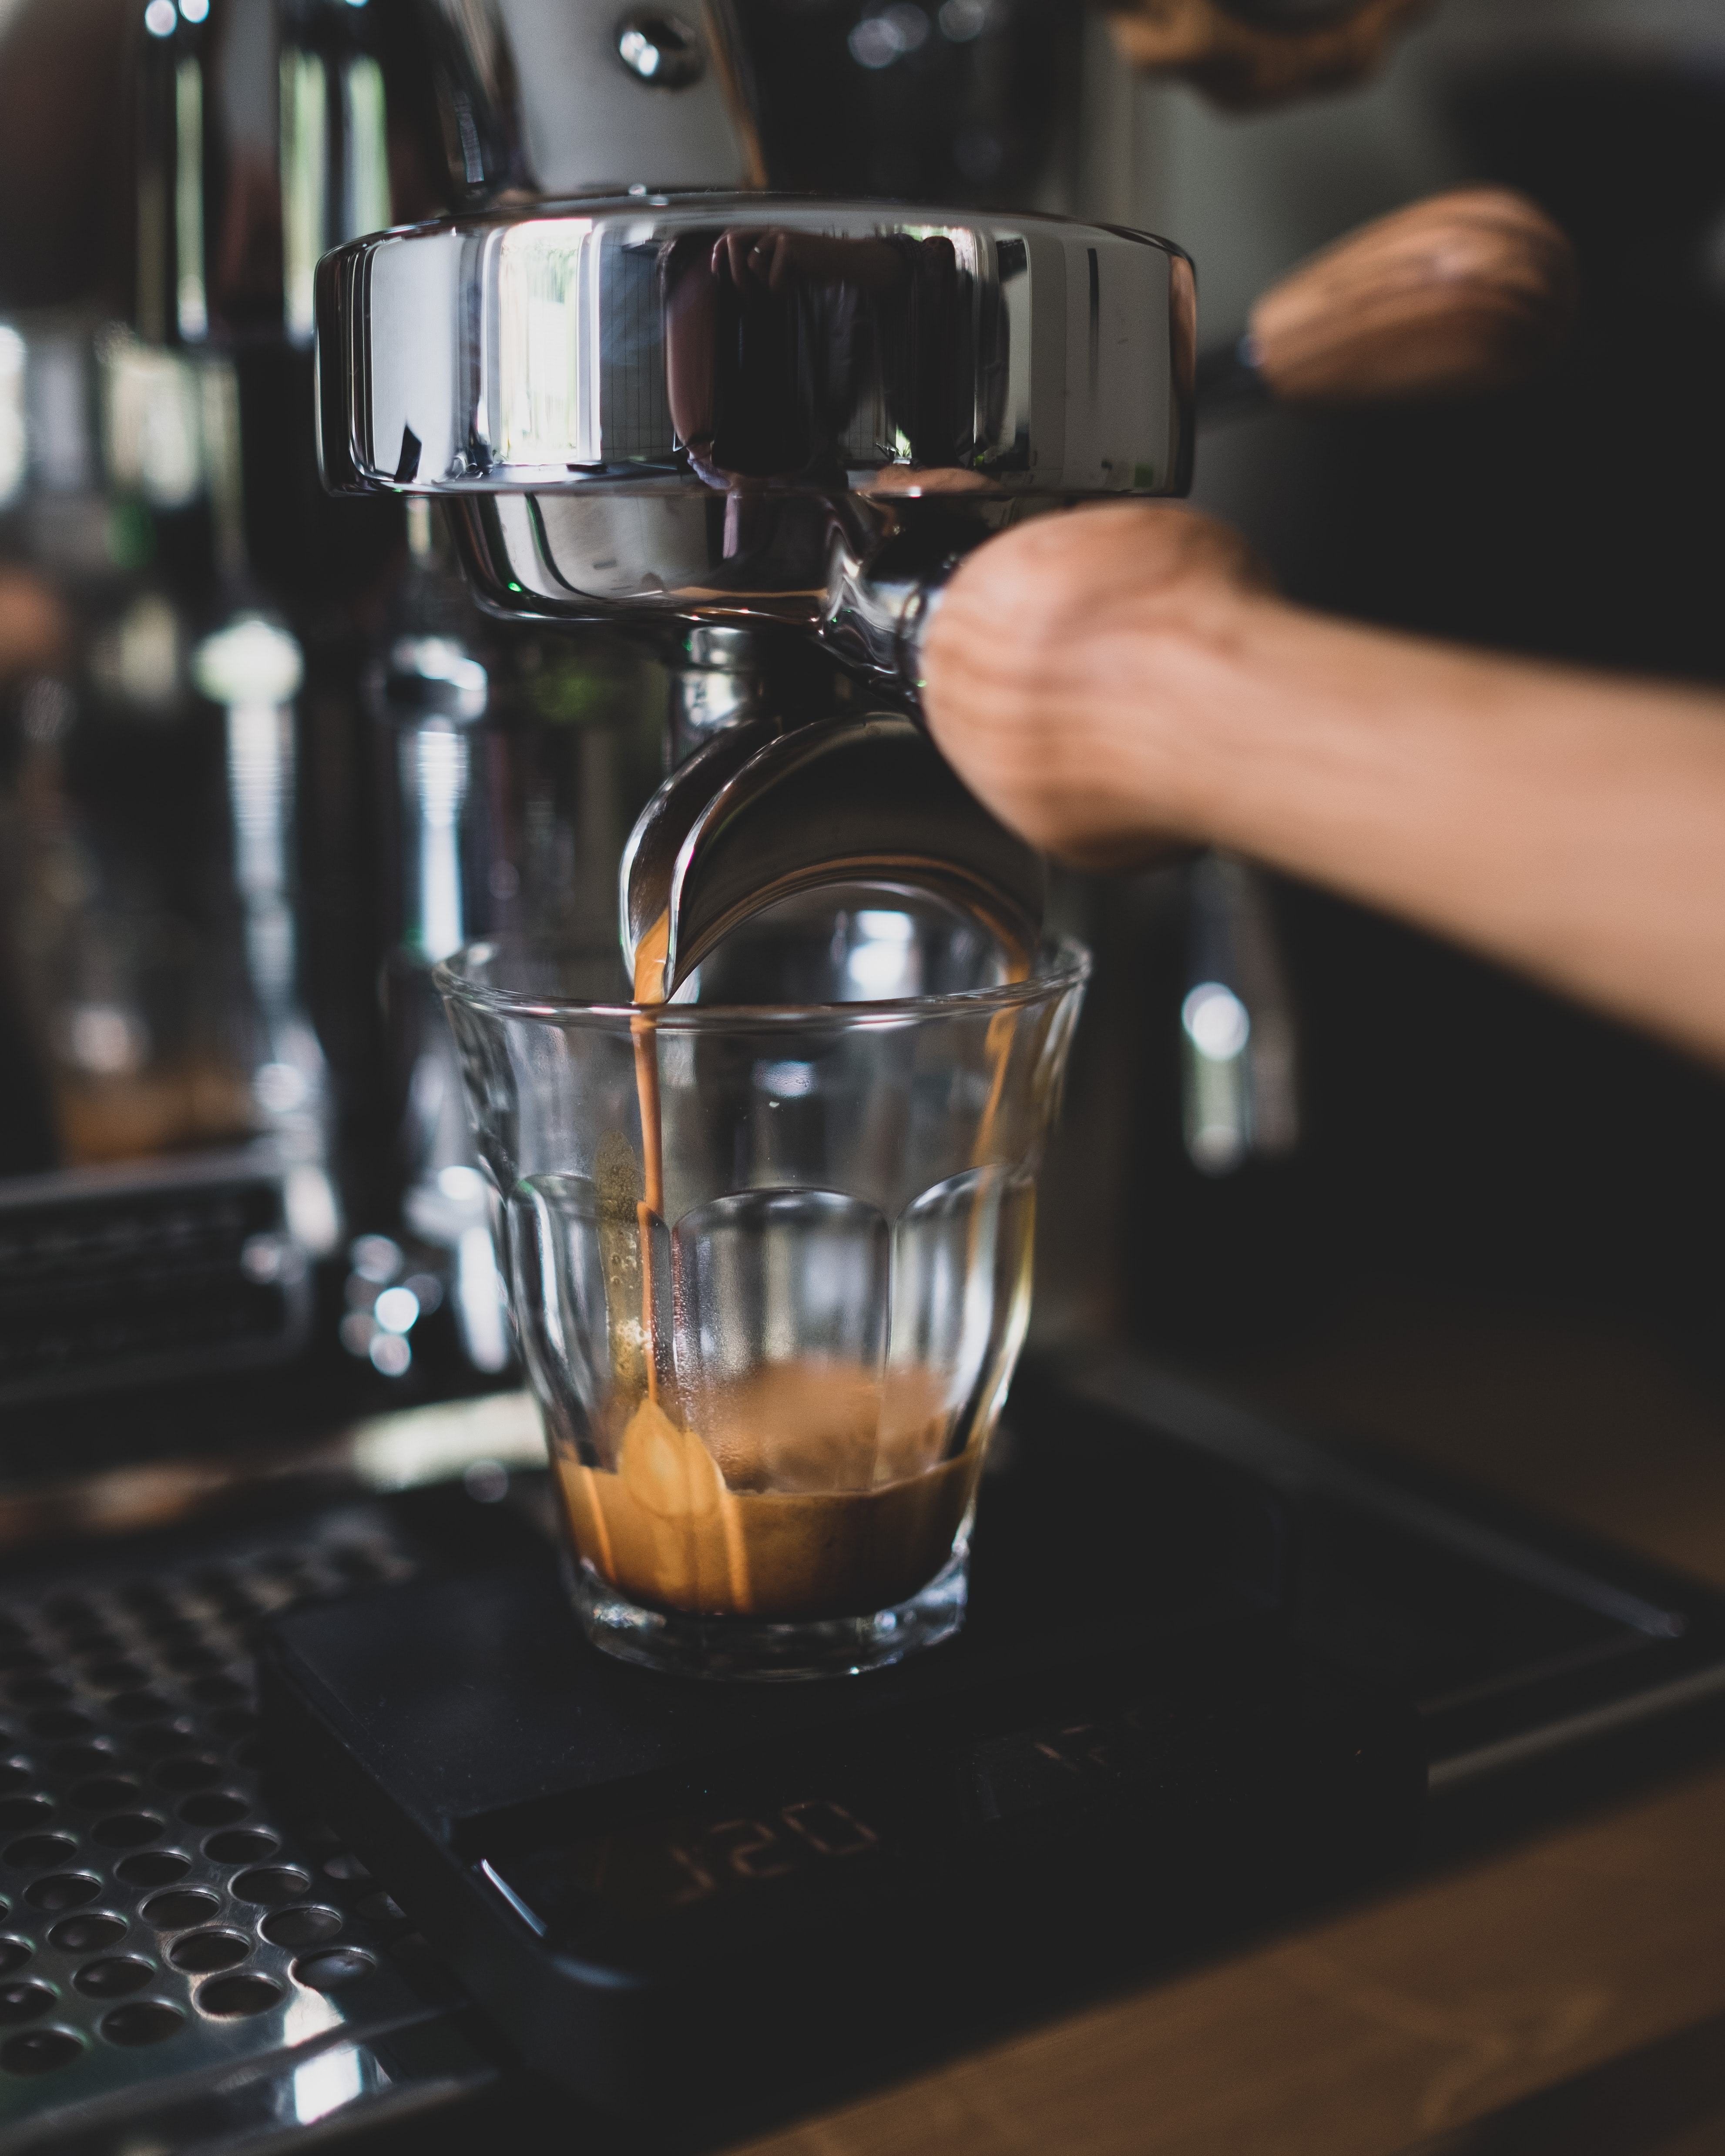 54106 download wallpaper Miscellanea, Miscellaneous, Coffee, Glass, Coffee Machine, Metal, Metallic, Drink, Beverage screensavers and pictures for free